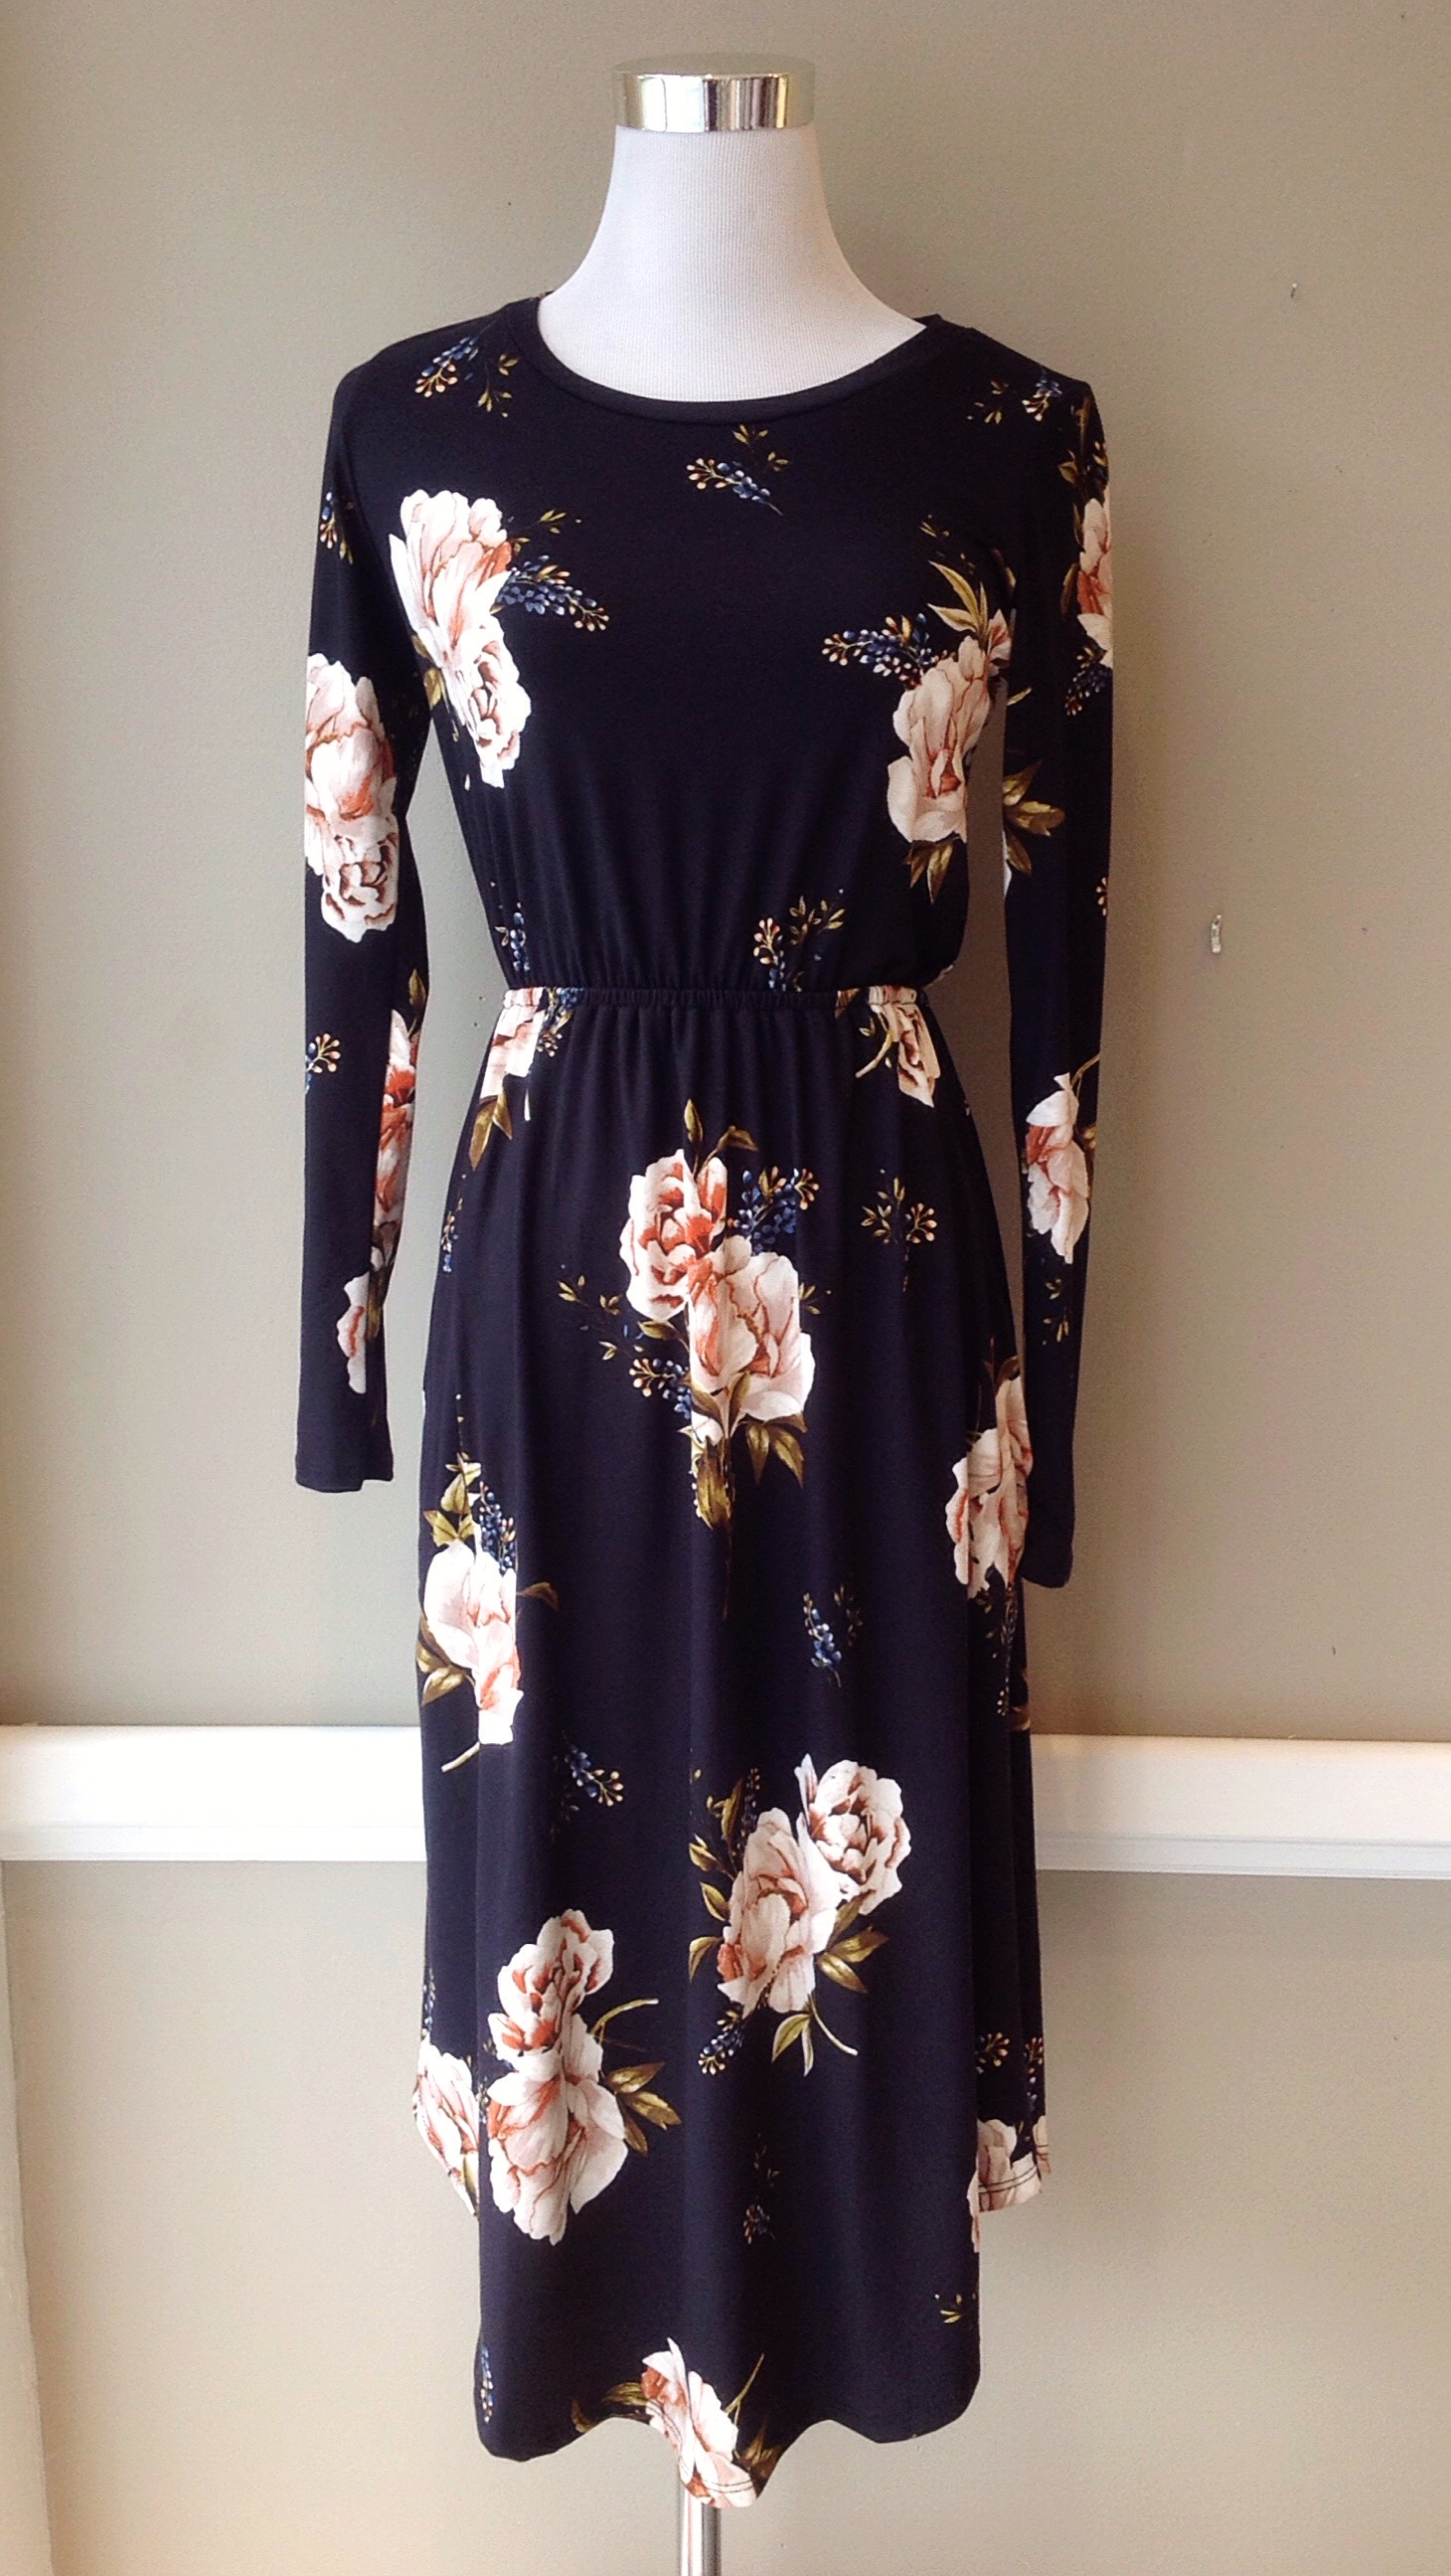 Long sleeve, soft knit dress with rounded hem and side seam pockets in black/pink floral, $38